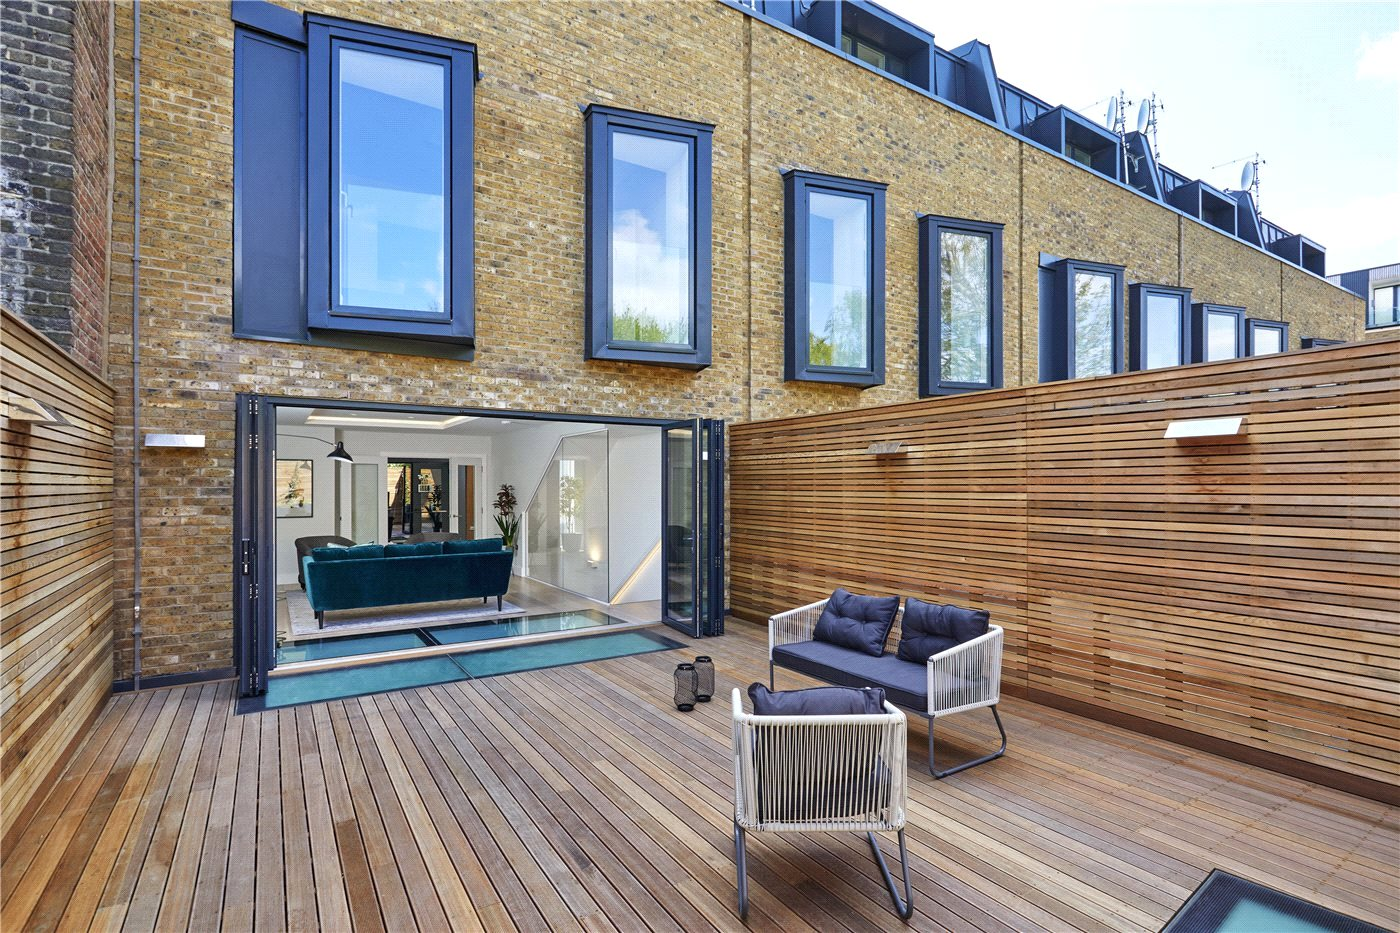 Modern town houses in East Dulwich